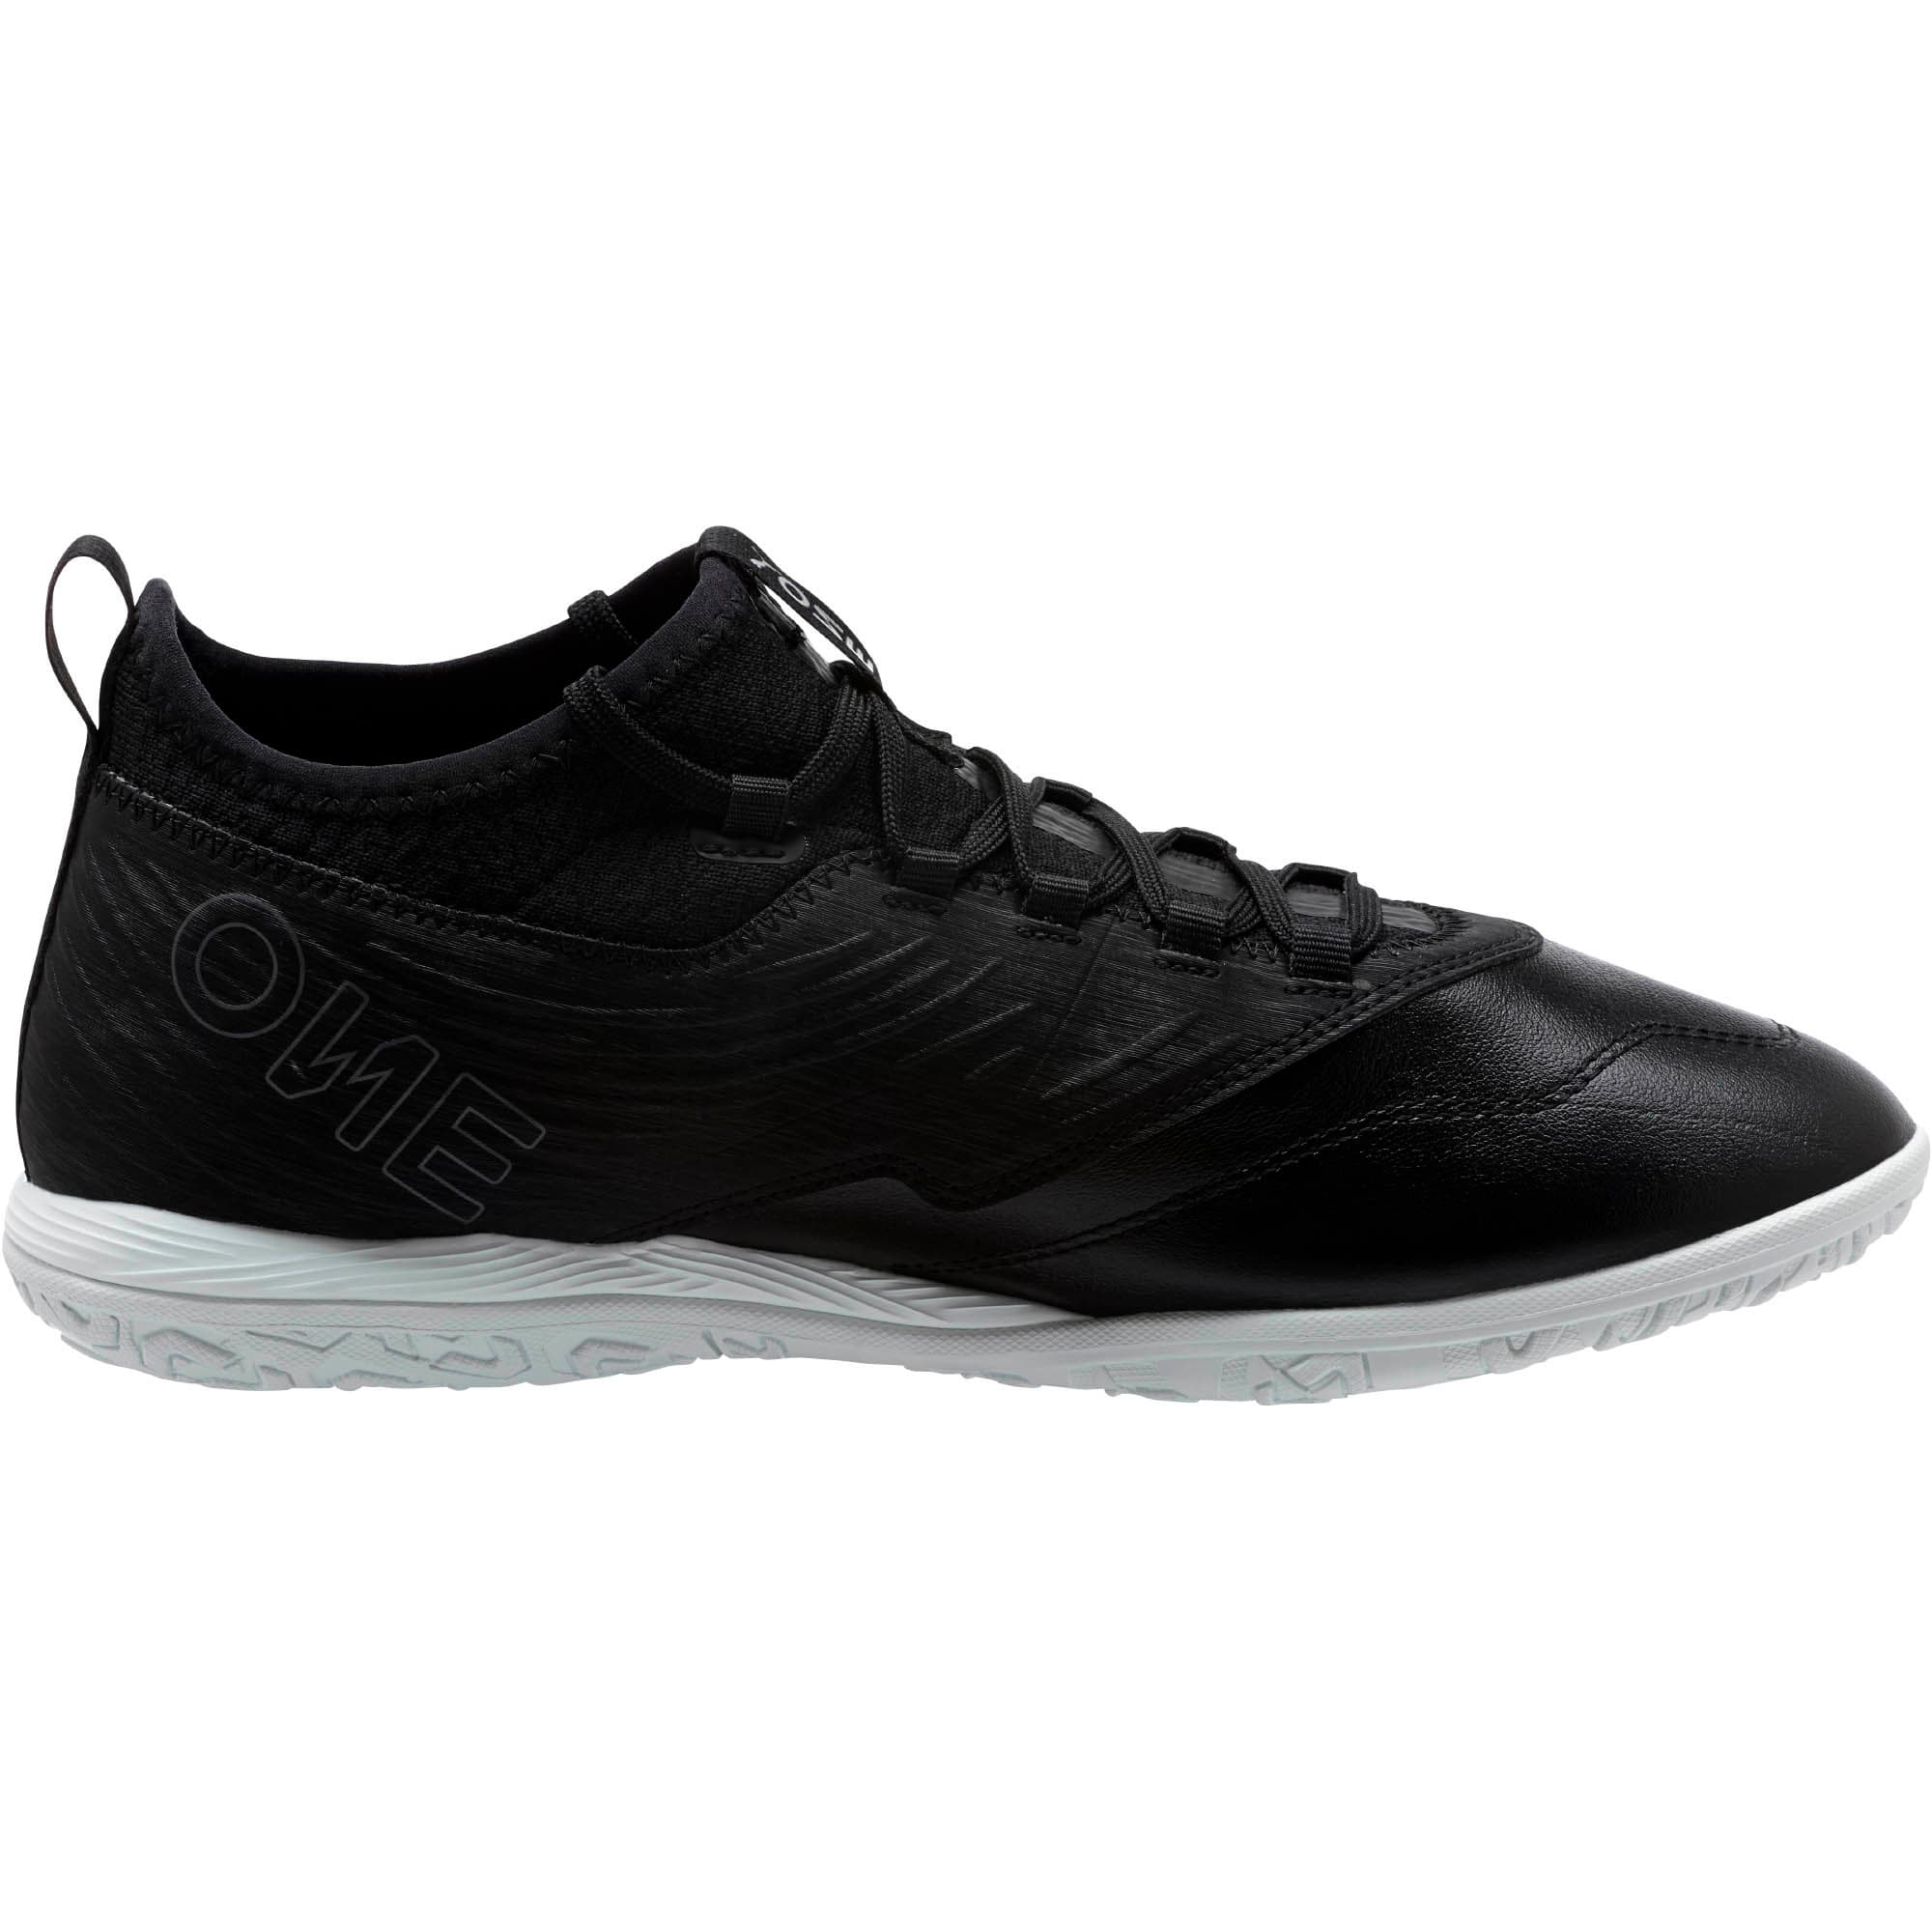 Thumbnail 4 of PUMA ONE 19.3 IT Men's Soccer Shoes, Puma Black-Puma Black-White, medium